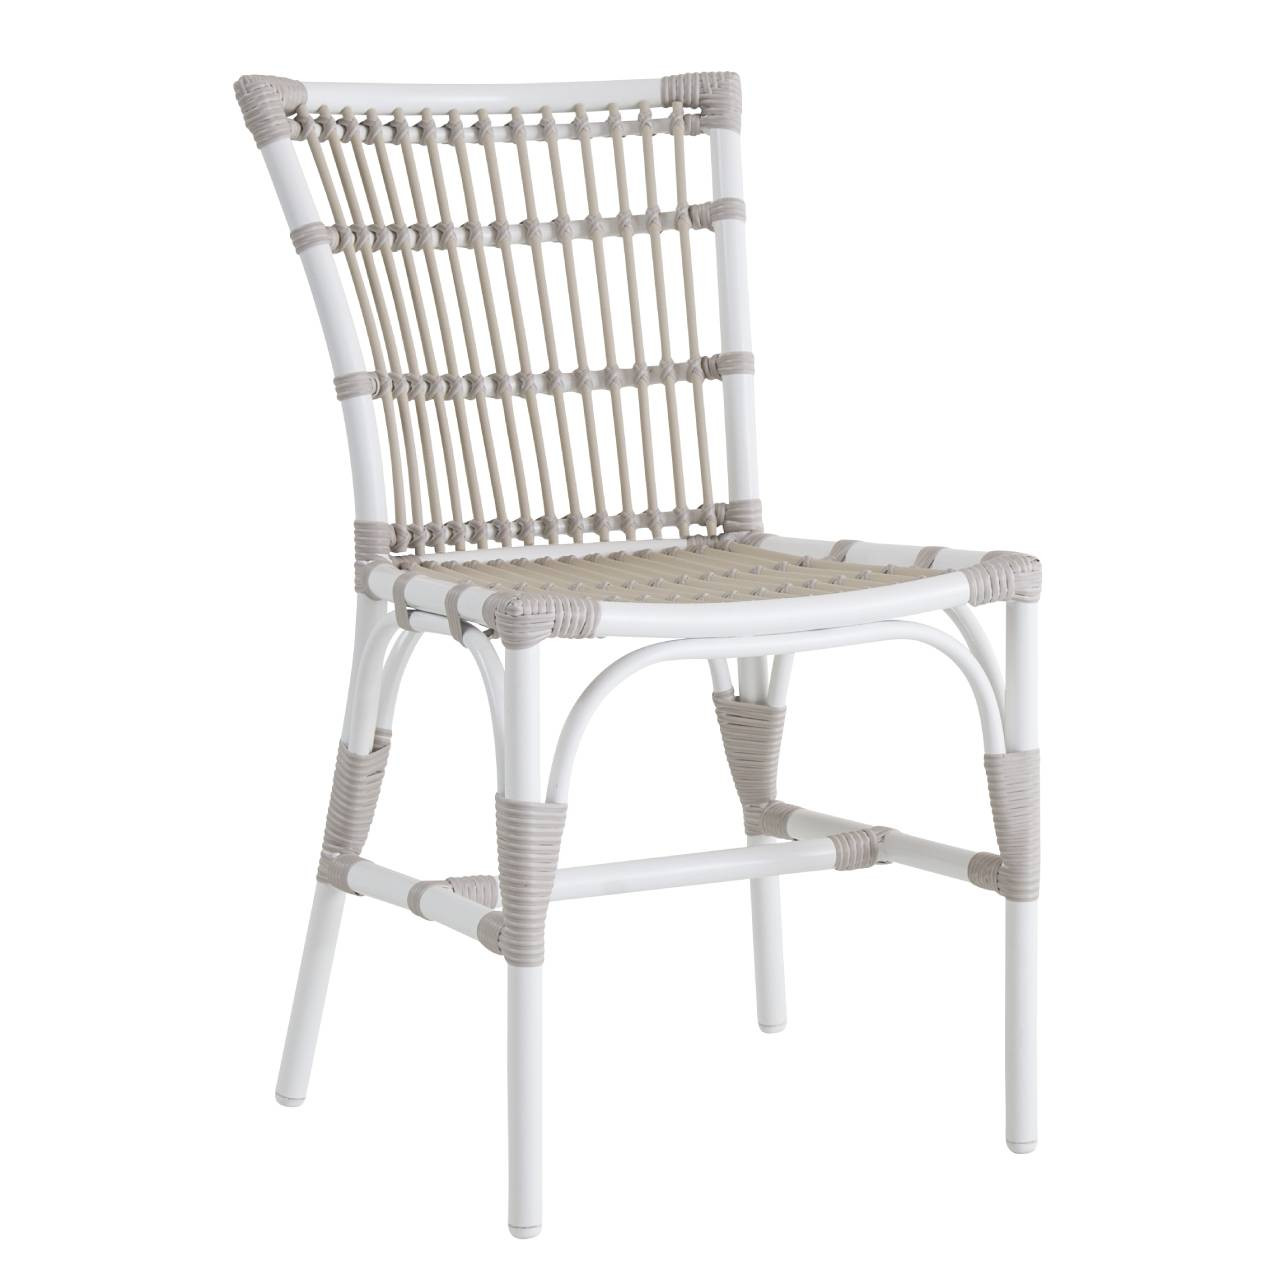 Sika Design Elisabeth Chair Exterior Stackable Outdoor Dining Chair